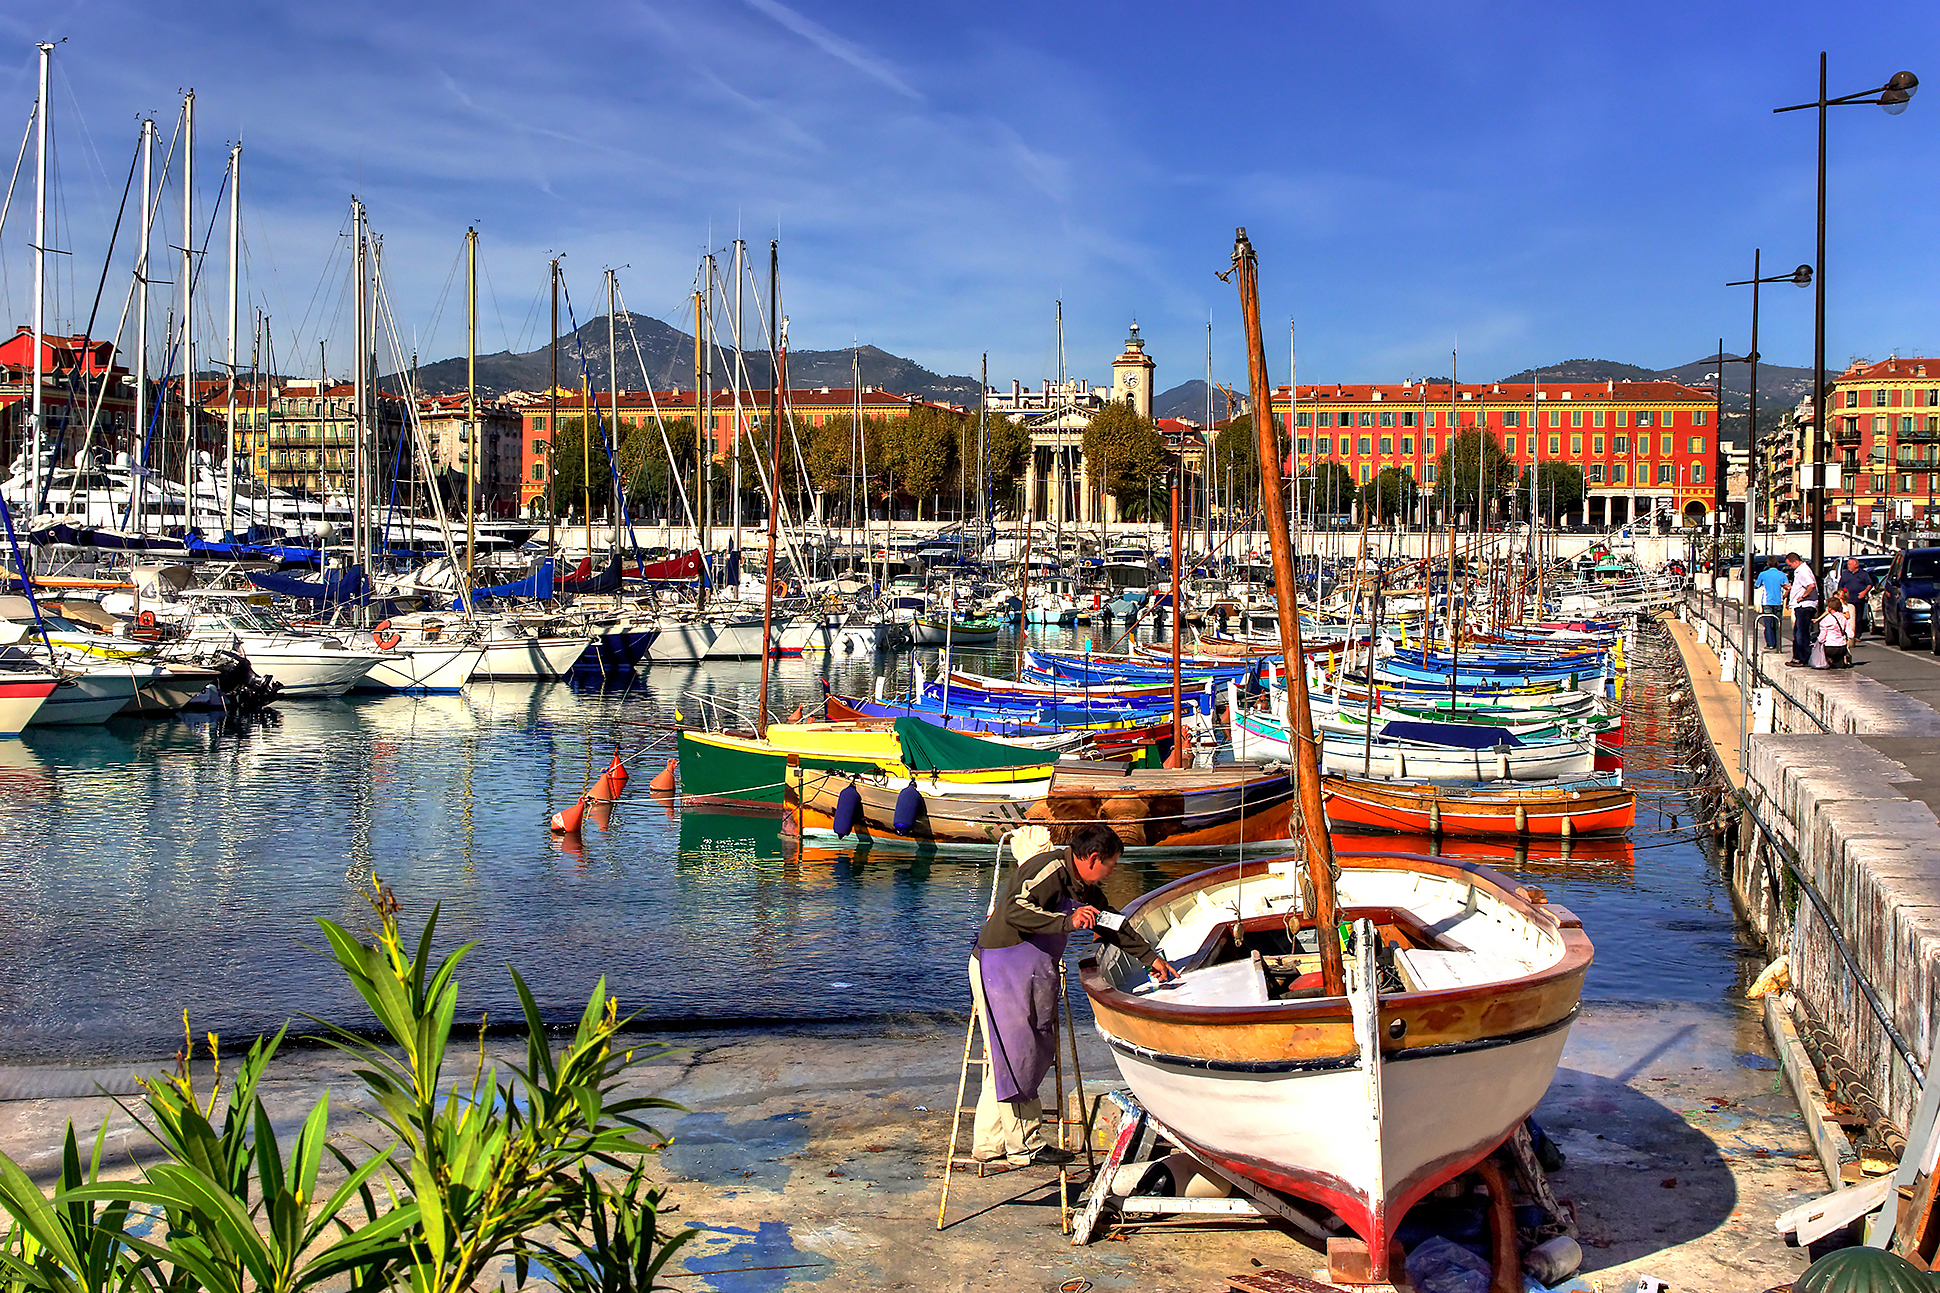 Boats in Nice France